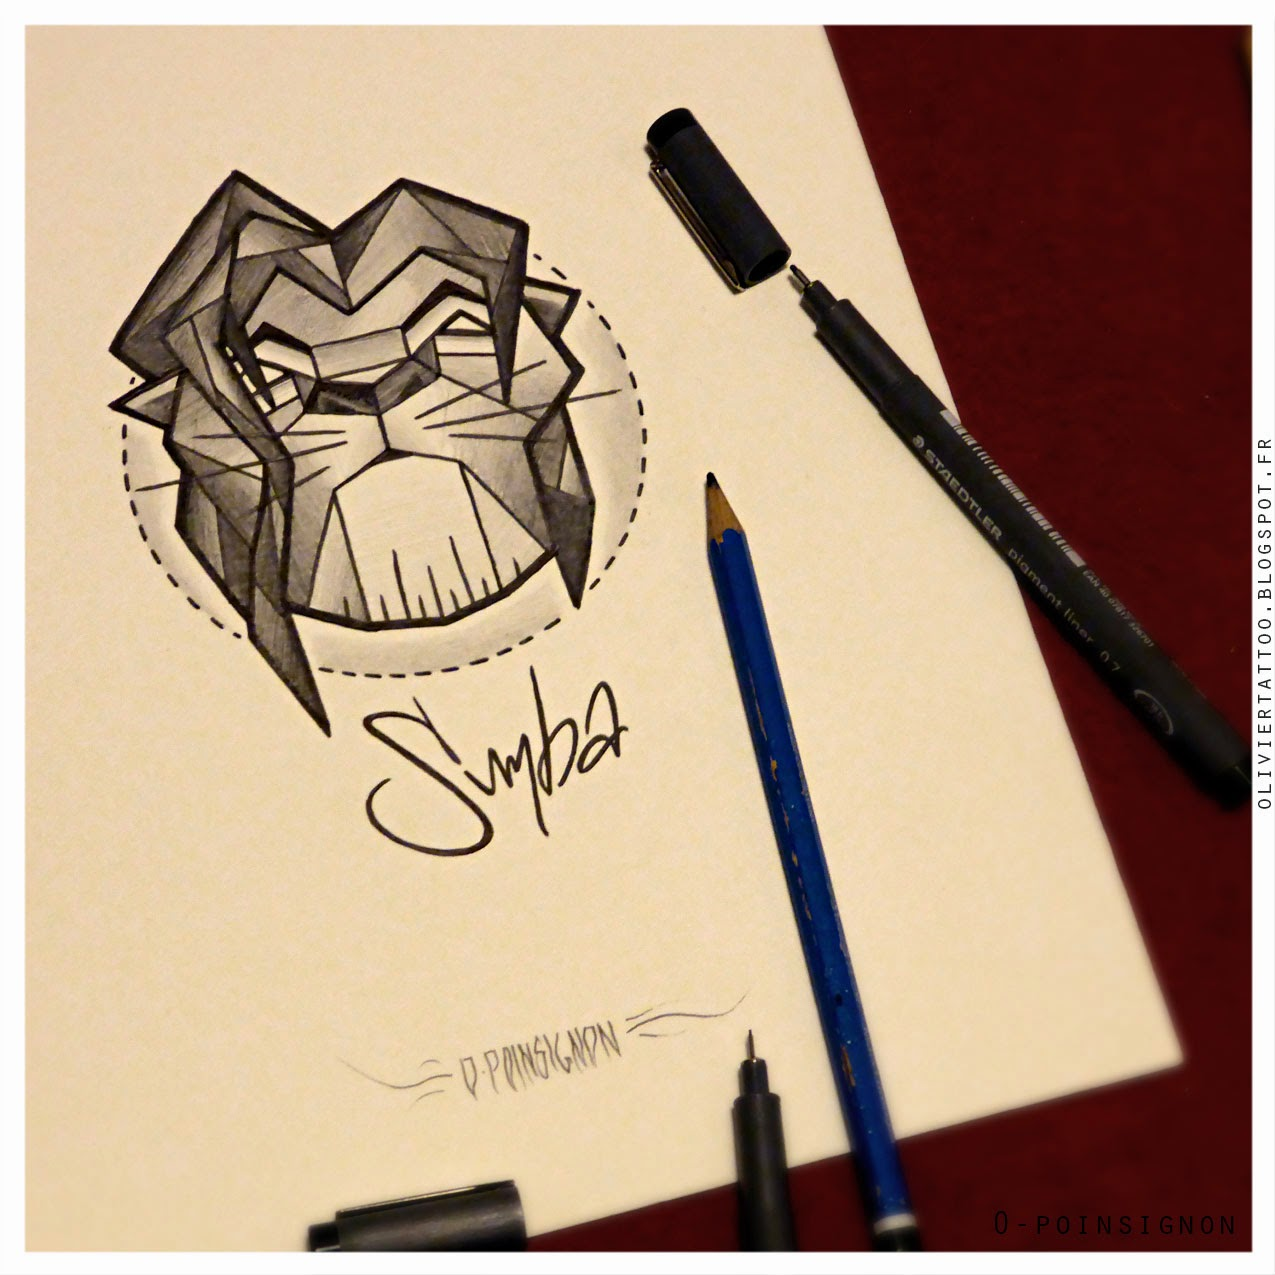 dessin-portrait-simba-roi-lion-france-paris-olivier-poinsignon-tatouage-illustration-géométrié